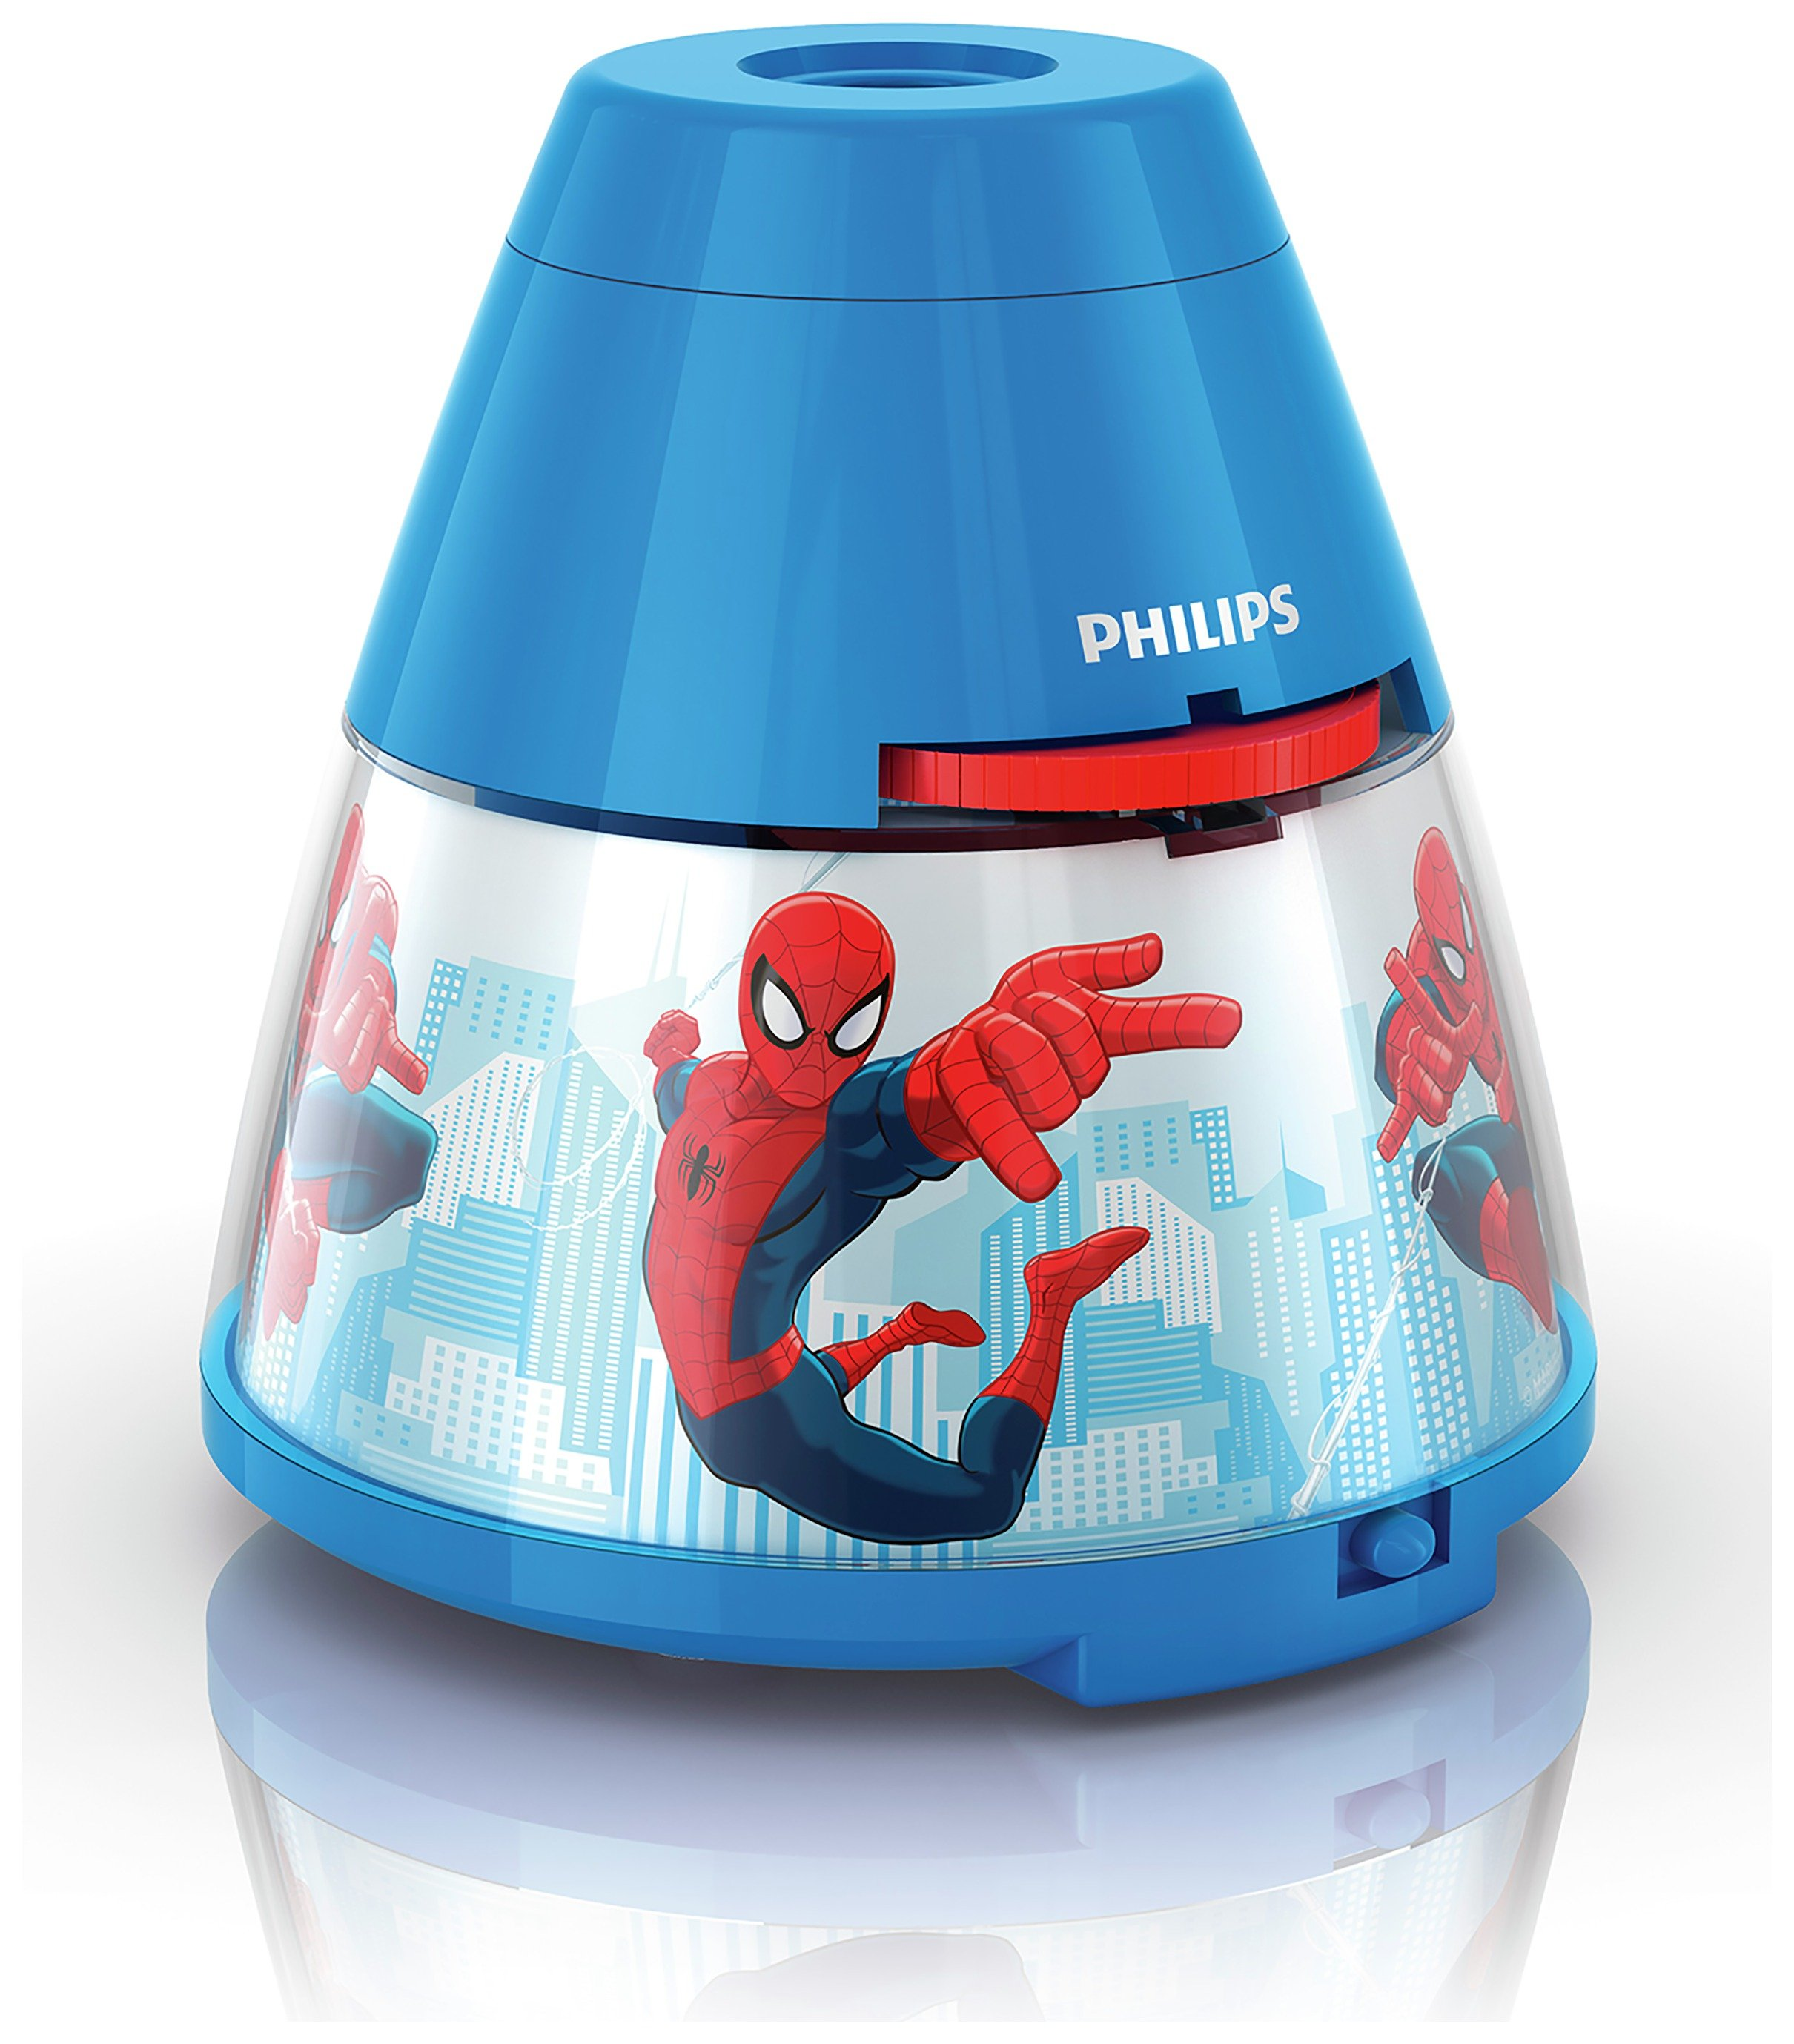 Philips - Marvel Spider-Man LED Projector - Red